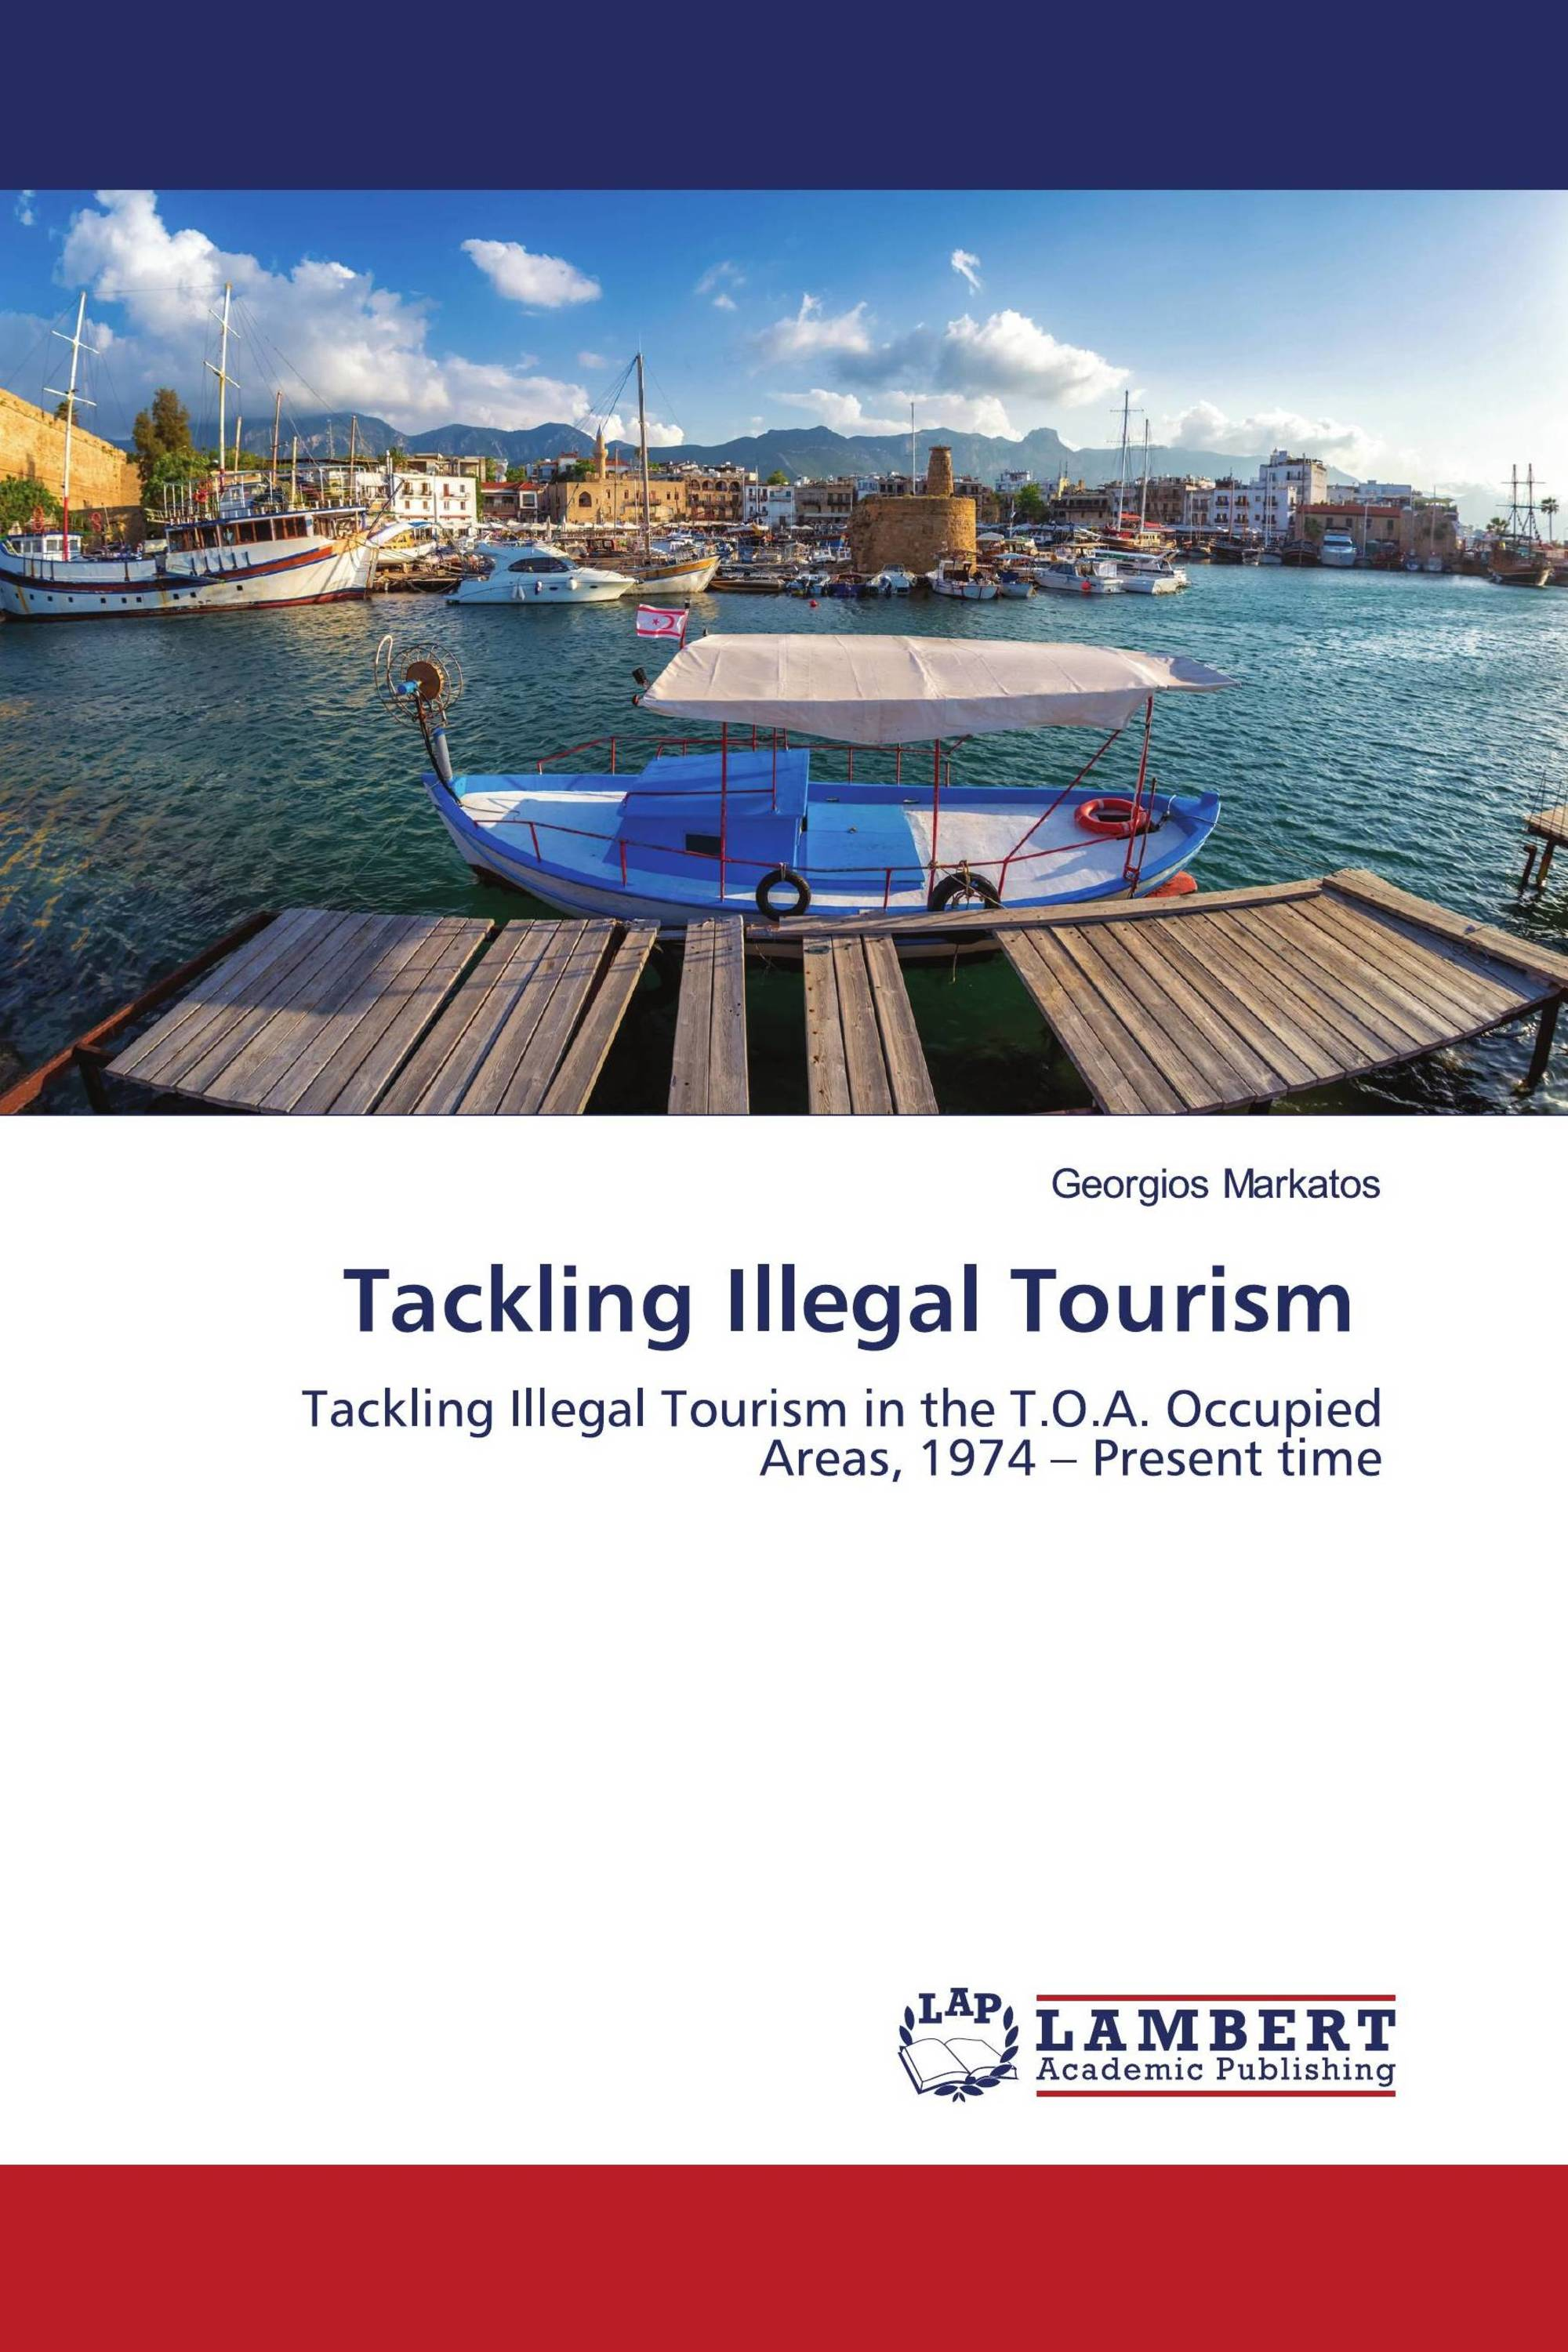 Tackling Illegal Tourism